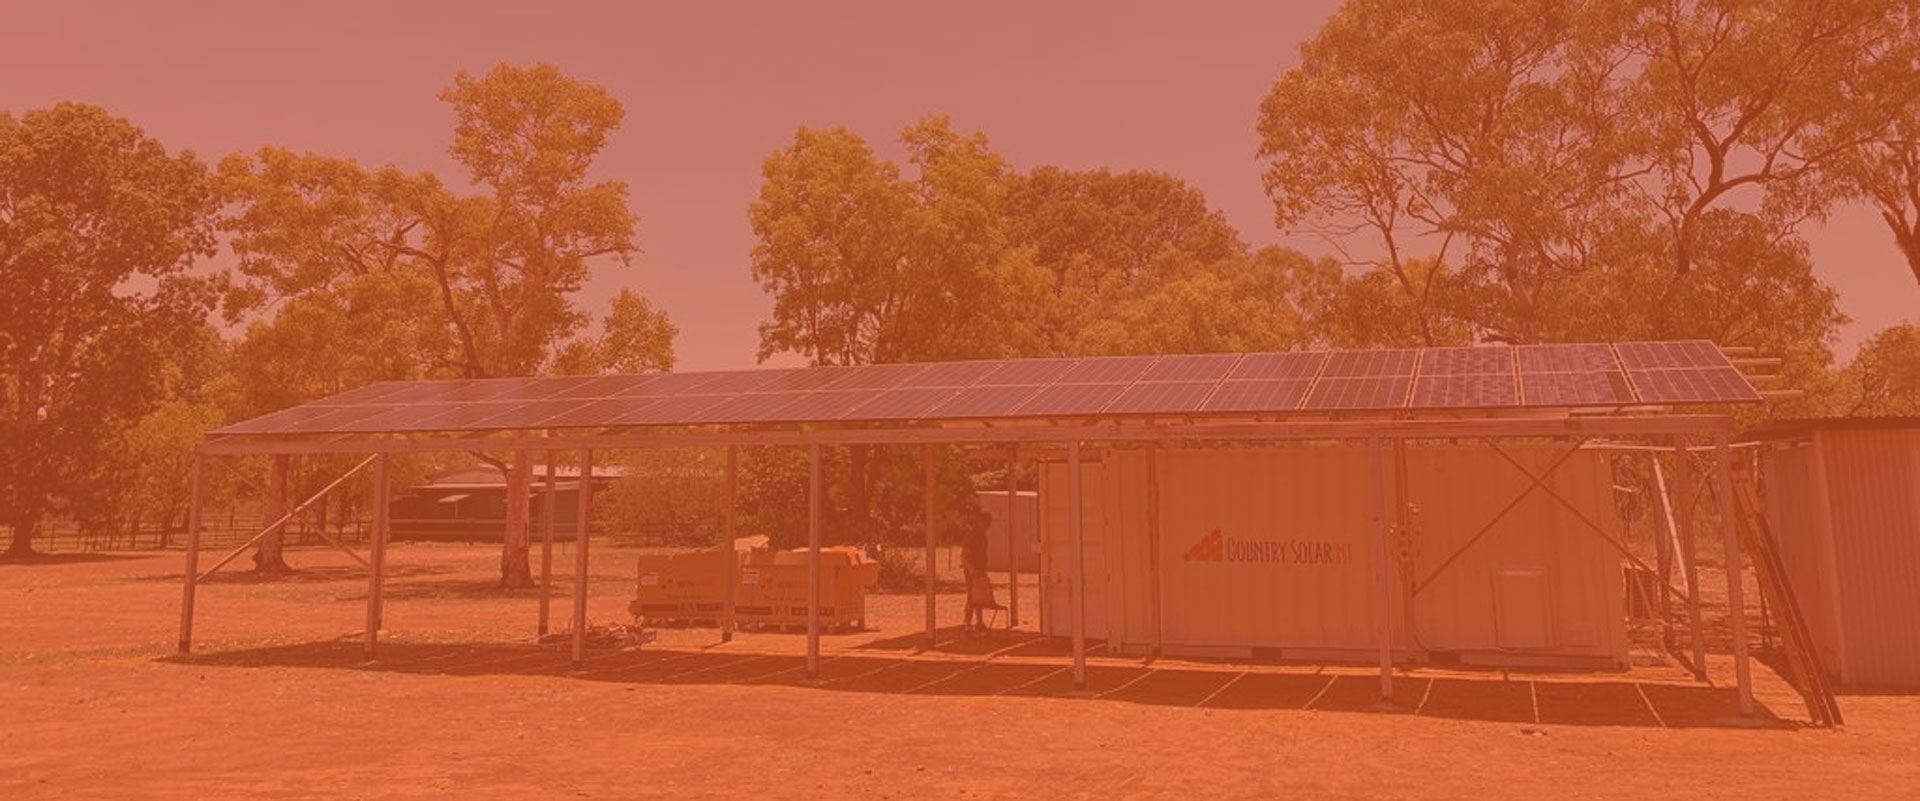 off grid solar power in NT outback australia